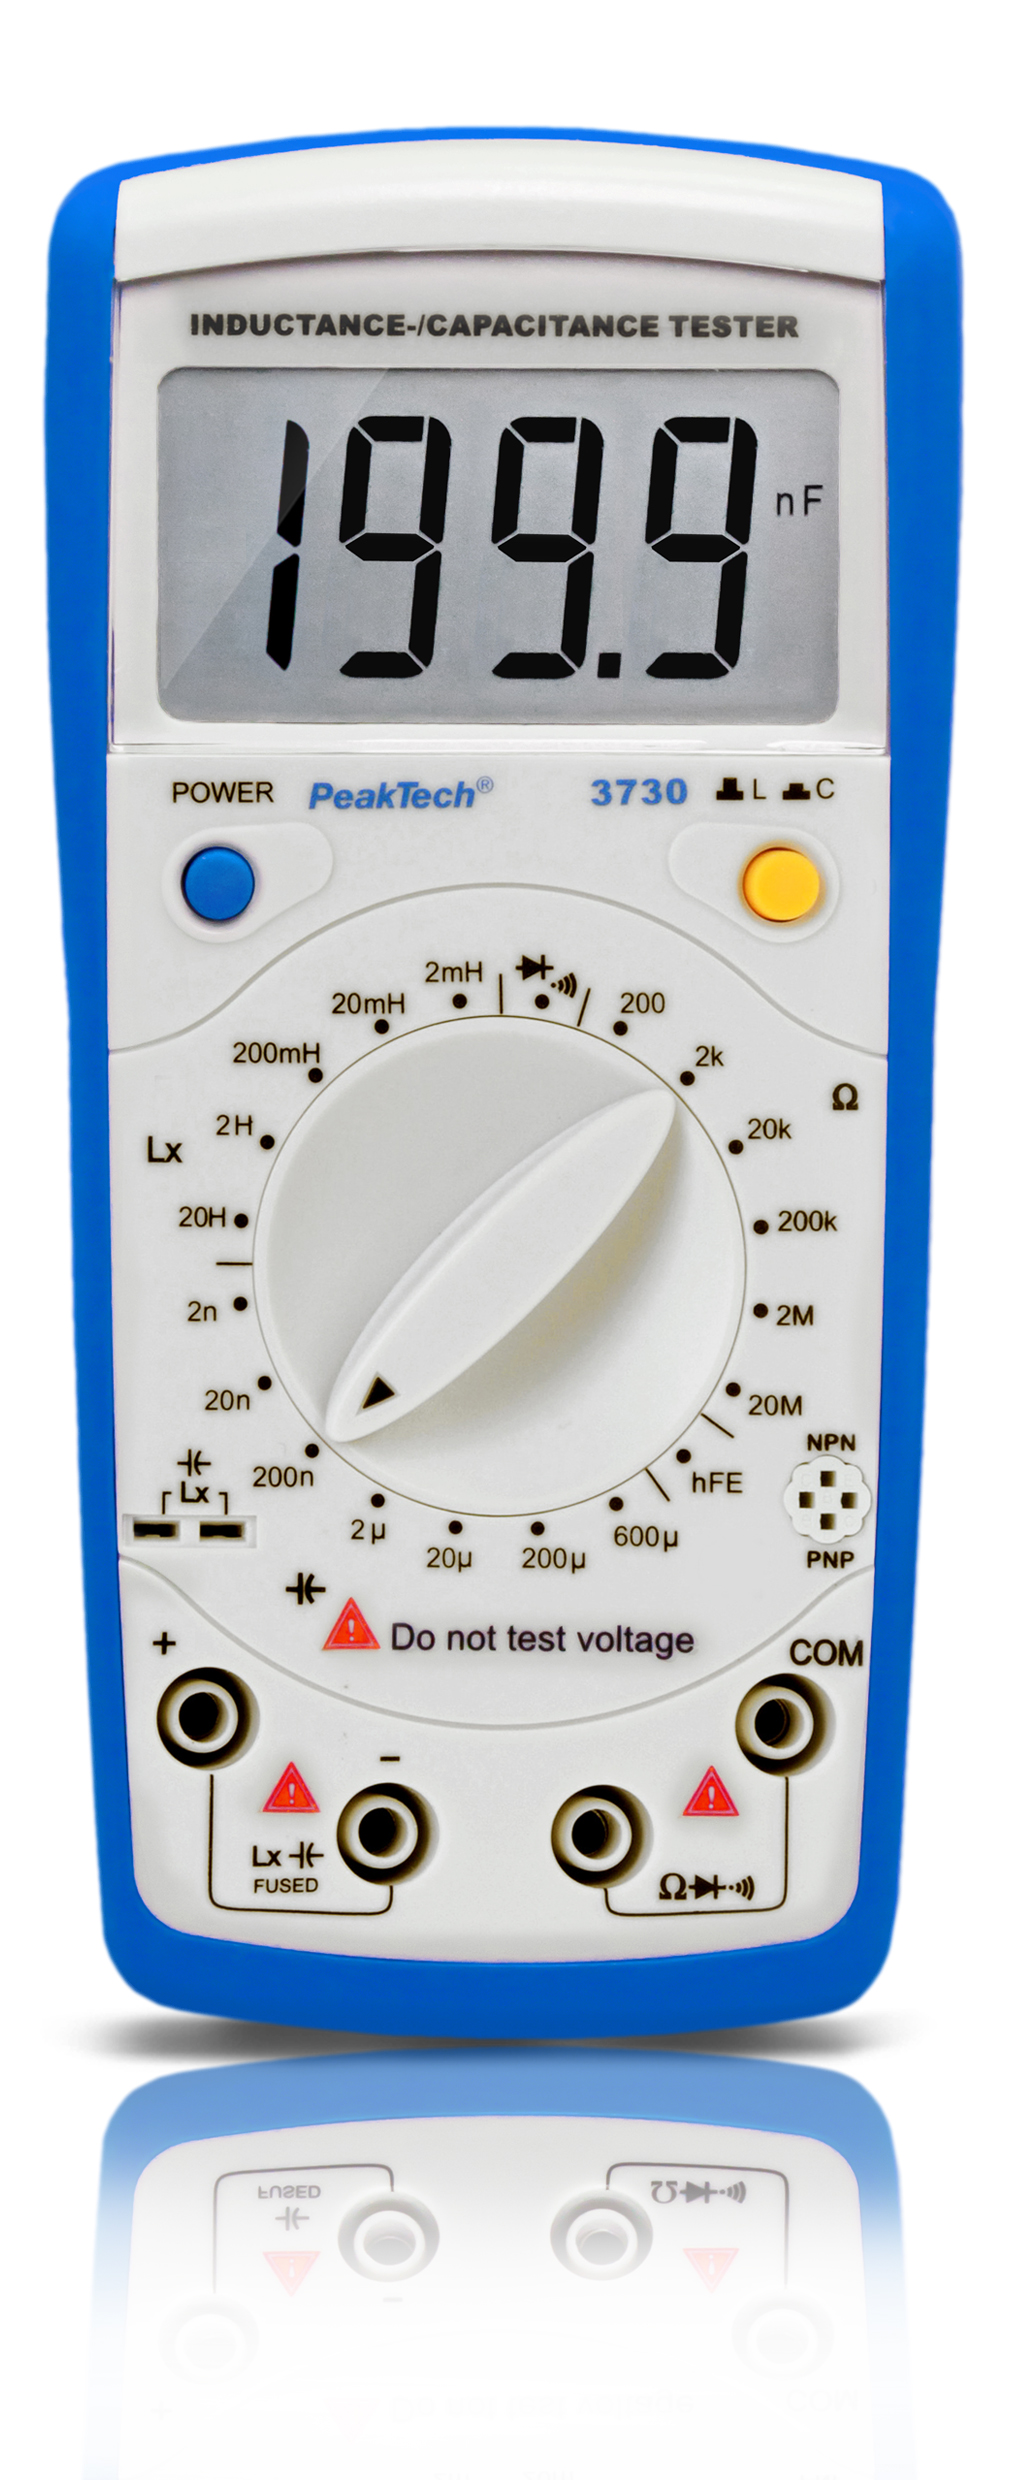 «PeakTech® P 3730» Inductance / capacitance meter